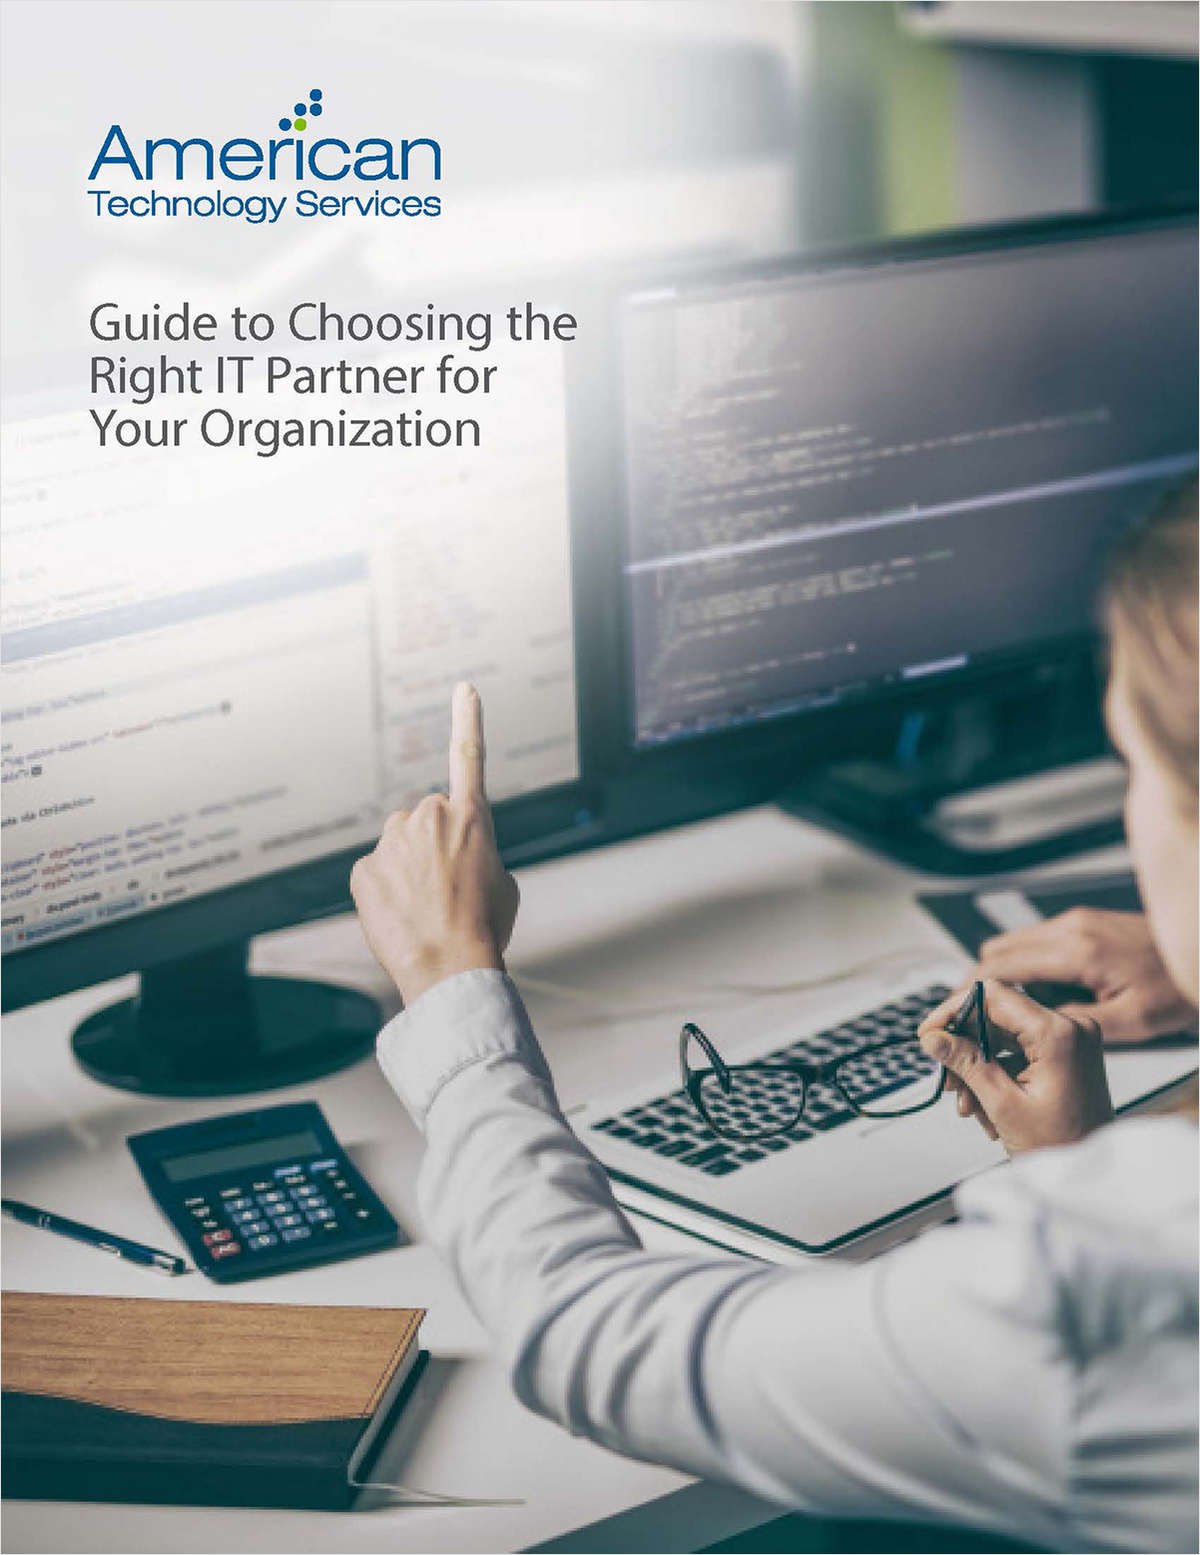 Guide to Choosing the Right IT Partner for Your Organization